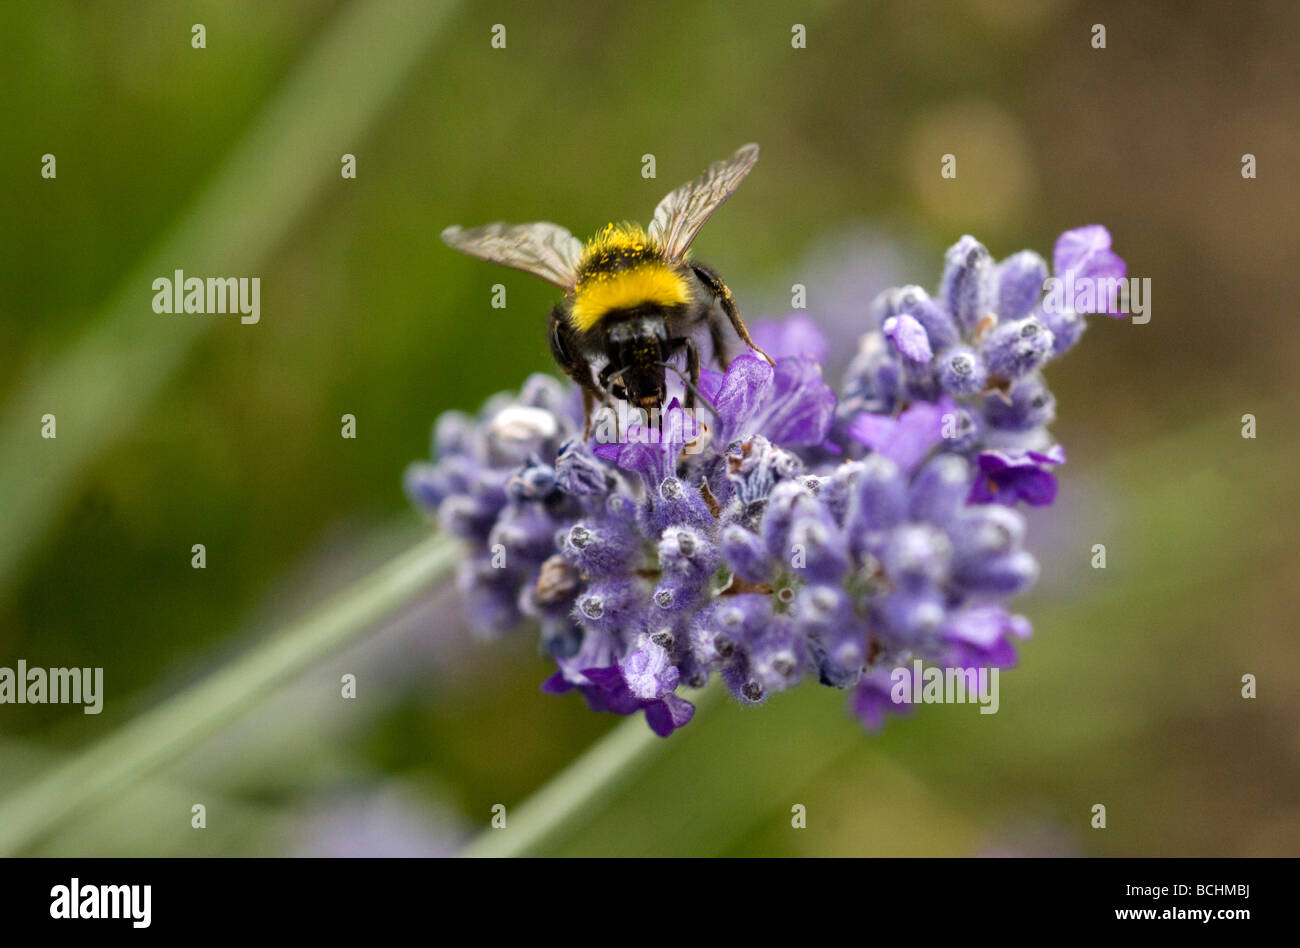 A Bumble Bee collects pollen from a Lavender flower in a garden in Sussex UK Stock Photo